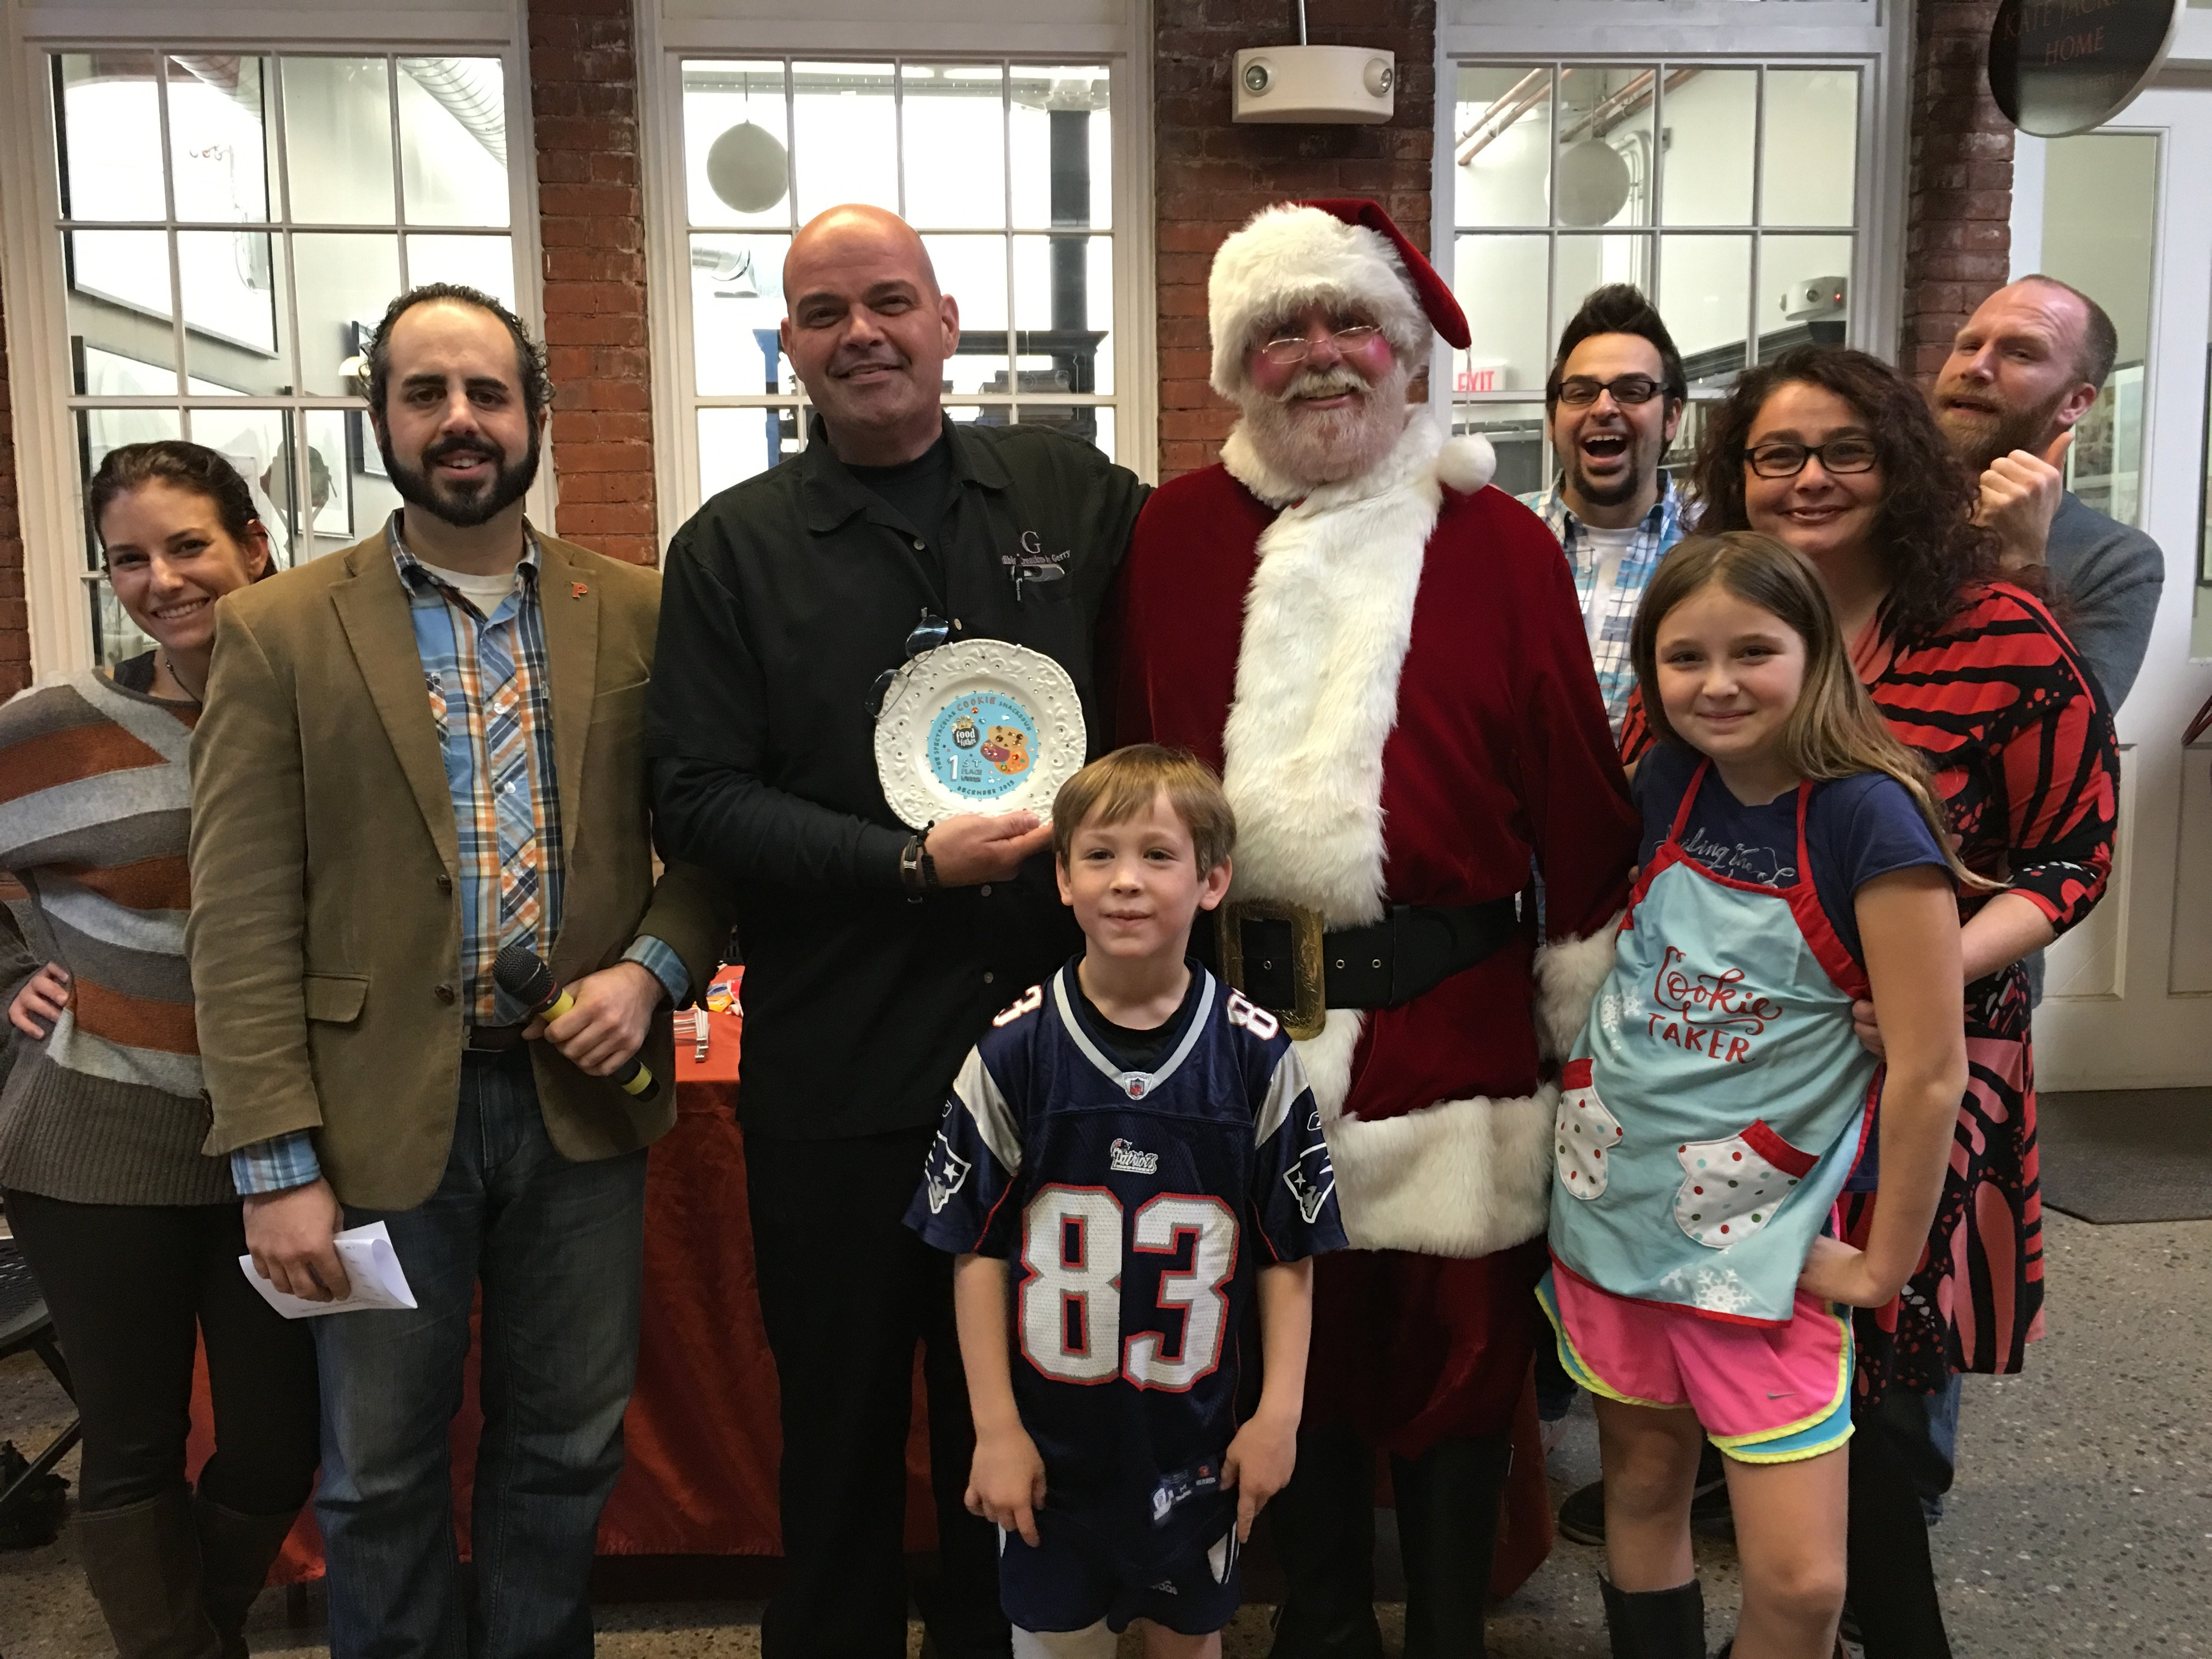 RI Food Fights Spectacular Cookie Smackdown winner Edible Creations by Gerry surrounded by Santa and the judges